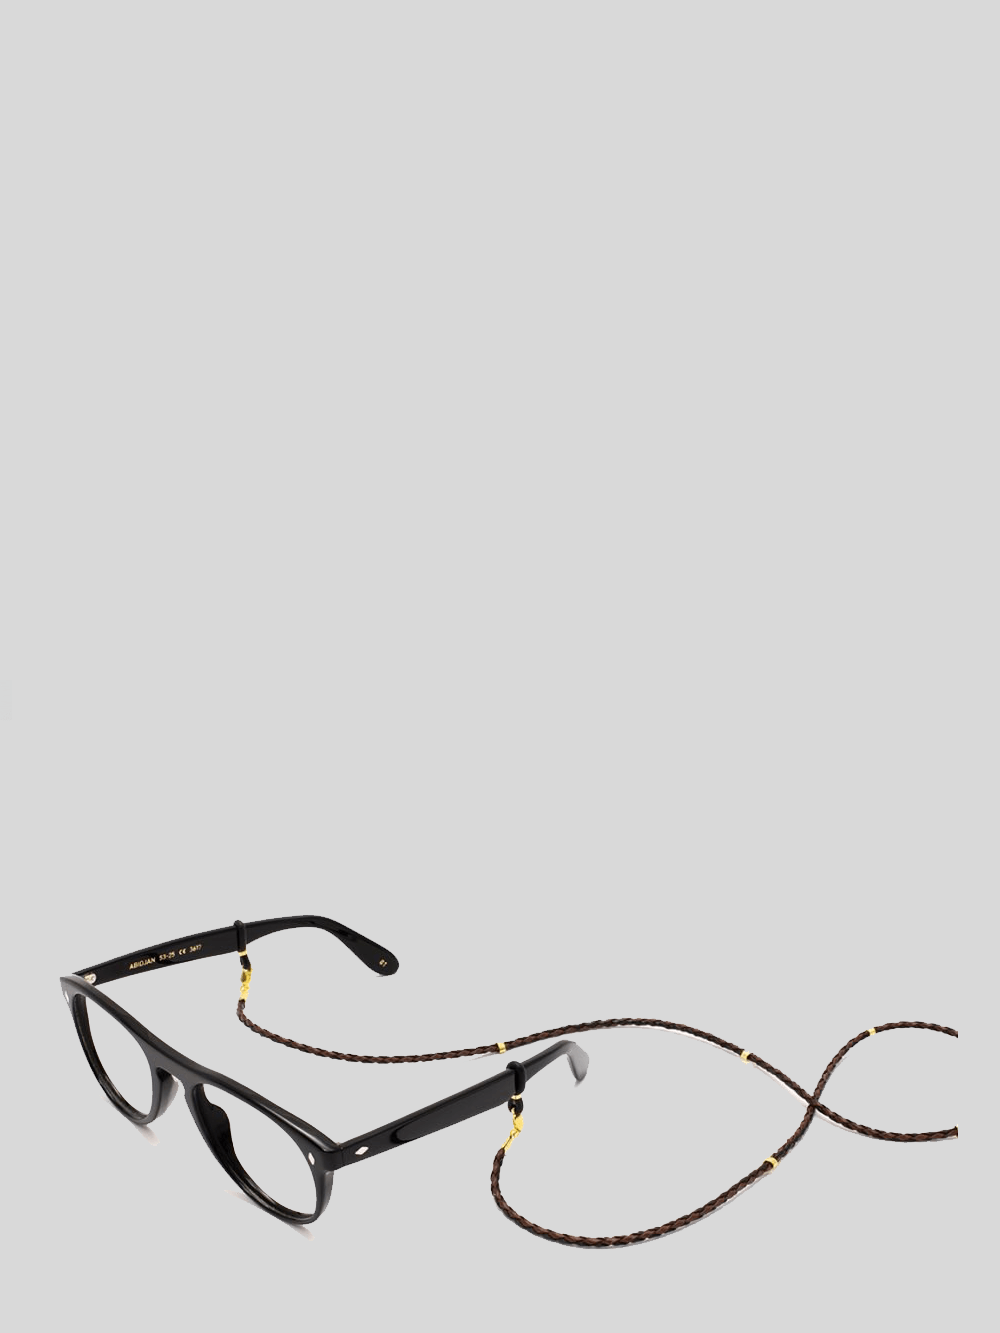 Sunglass Chain Handmade Leather Black Gold Sunglasses L.G.R.